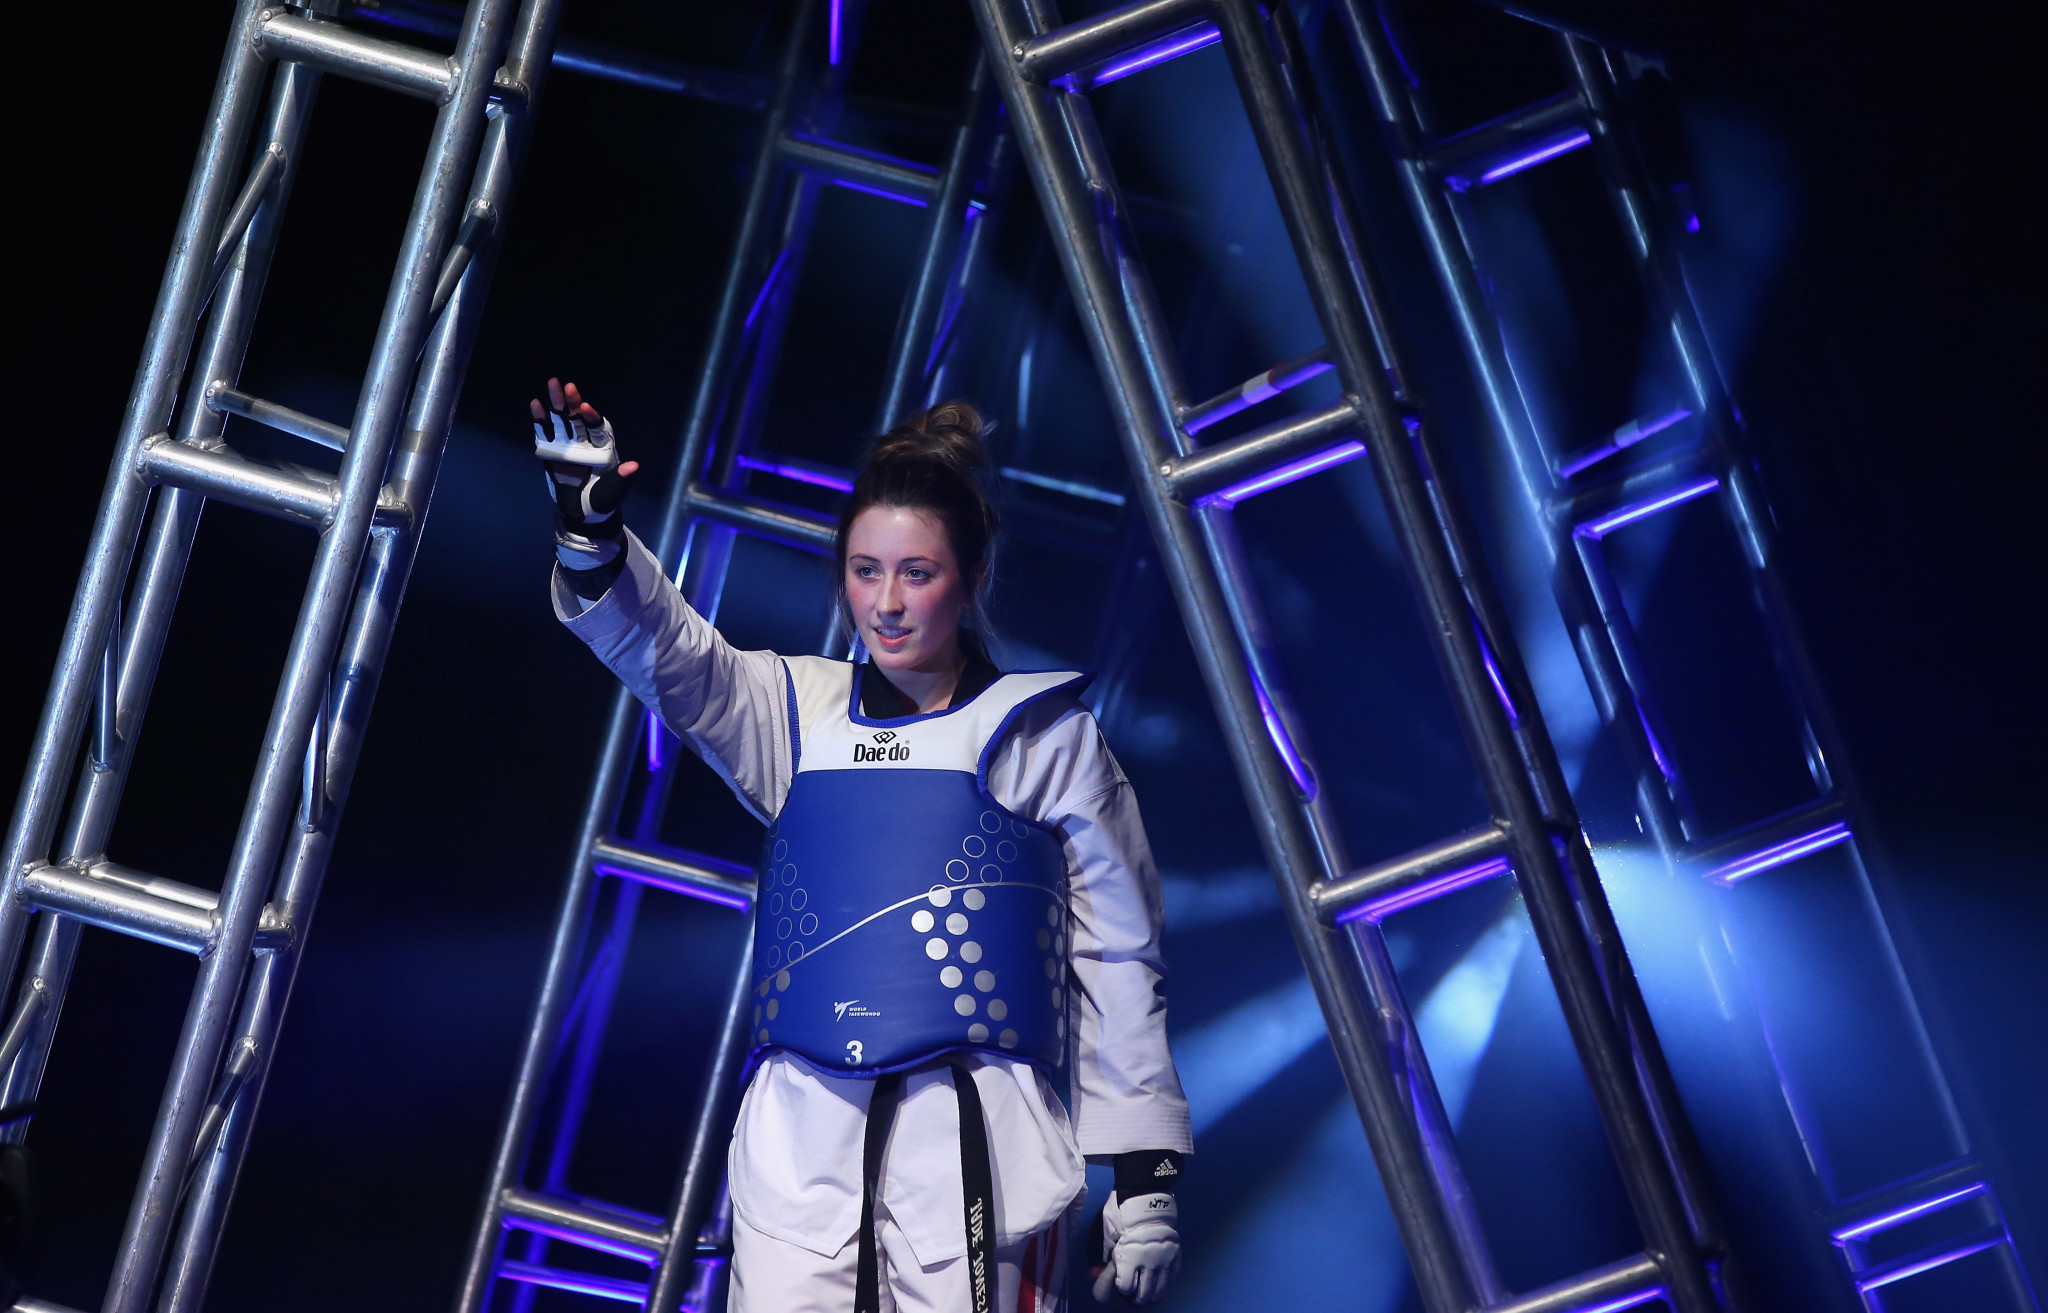 Athletes such as Britain's Jade Jones will compete at May's World Taekwondo Championships in Manchester ©Getty Images